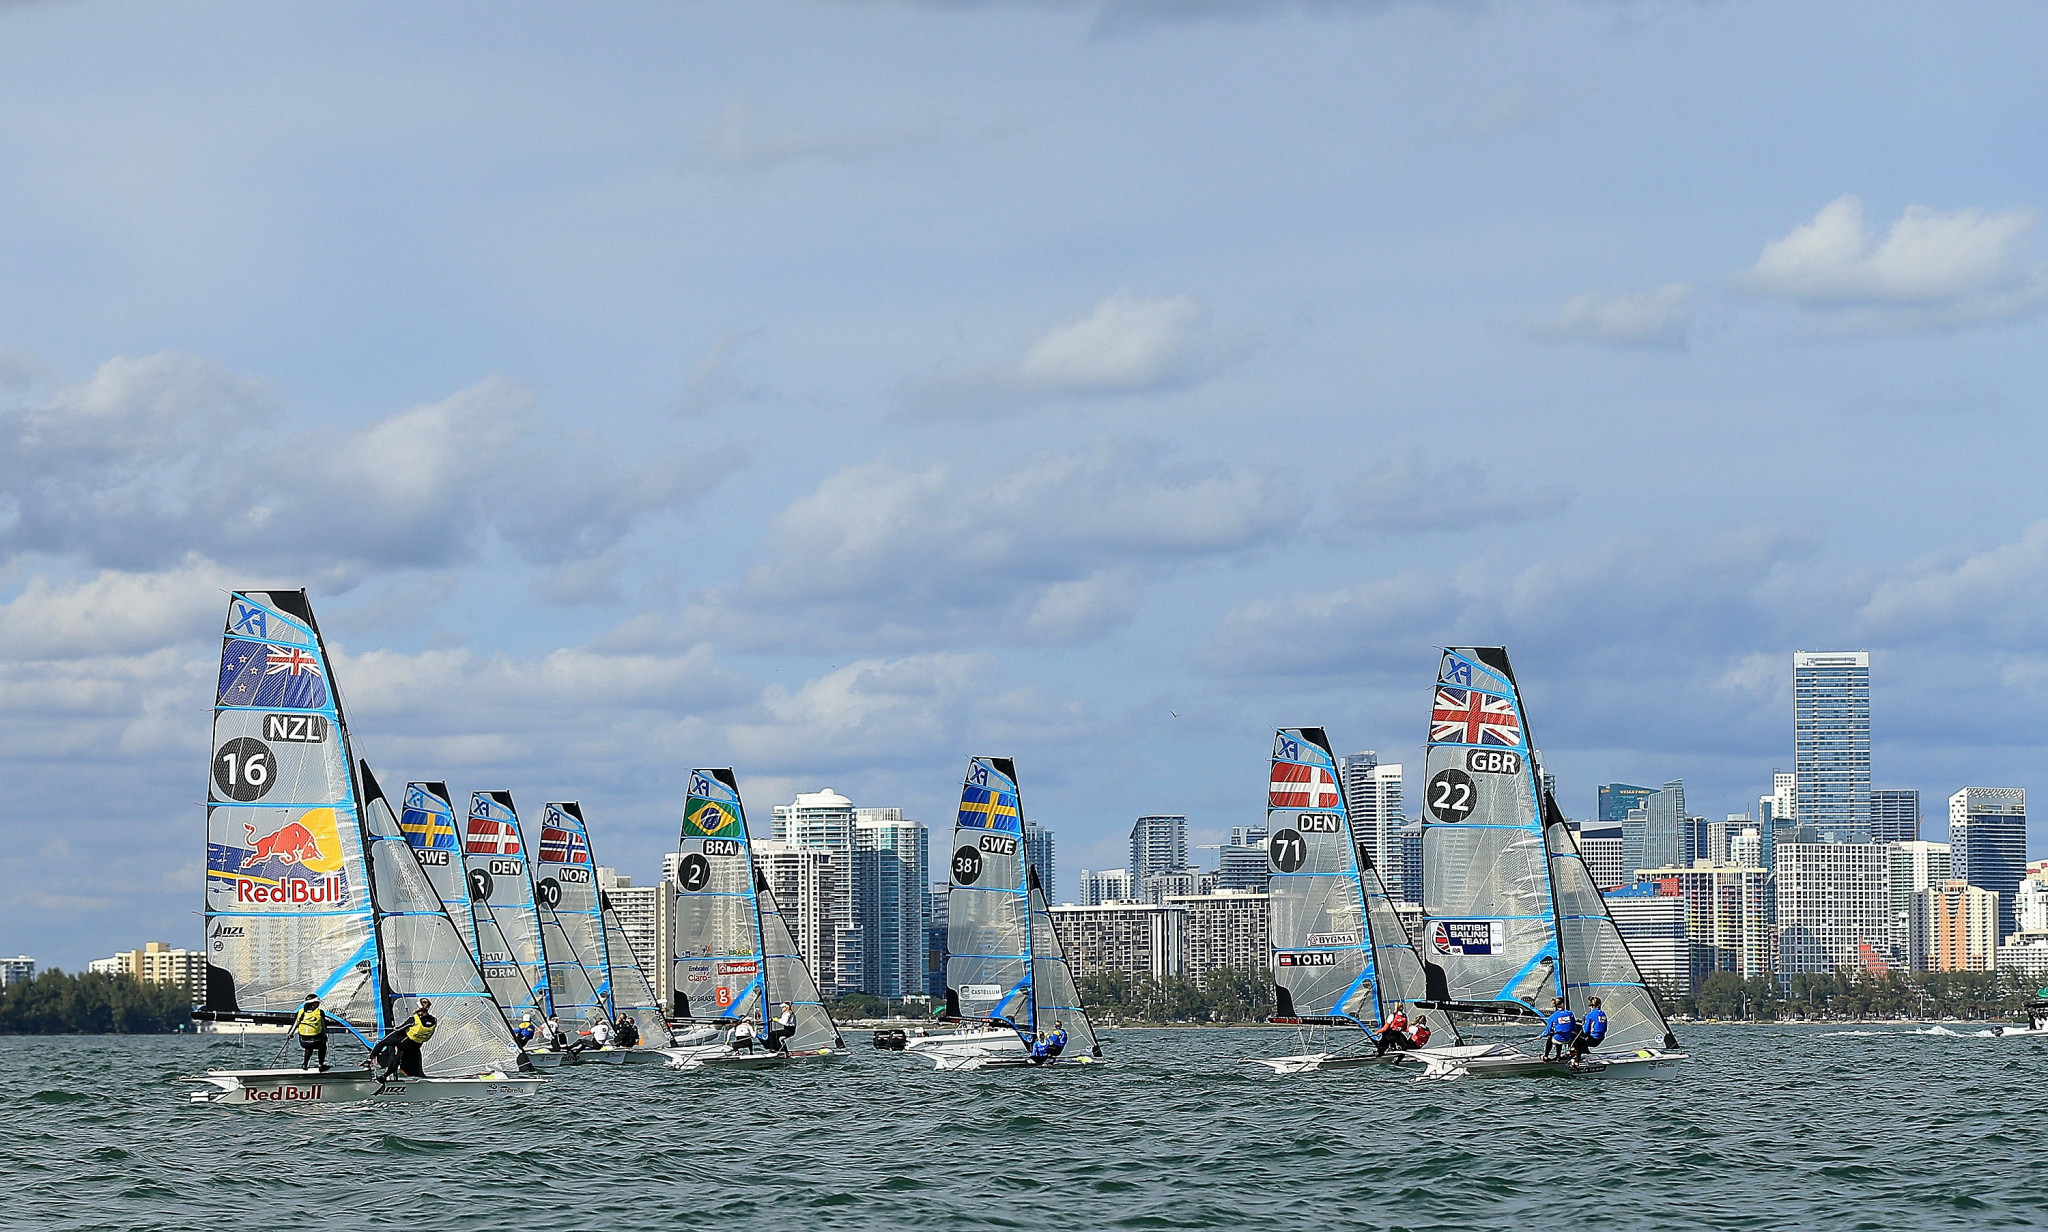 Thirty-four Olympic medallists entered for Sailing World Cup in Miami